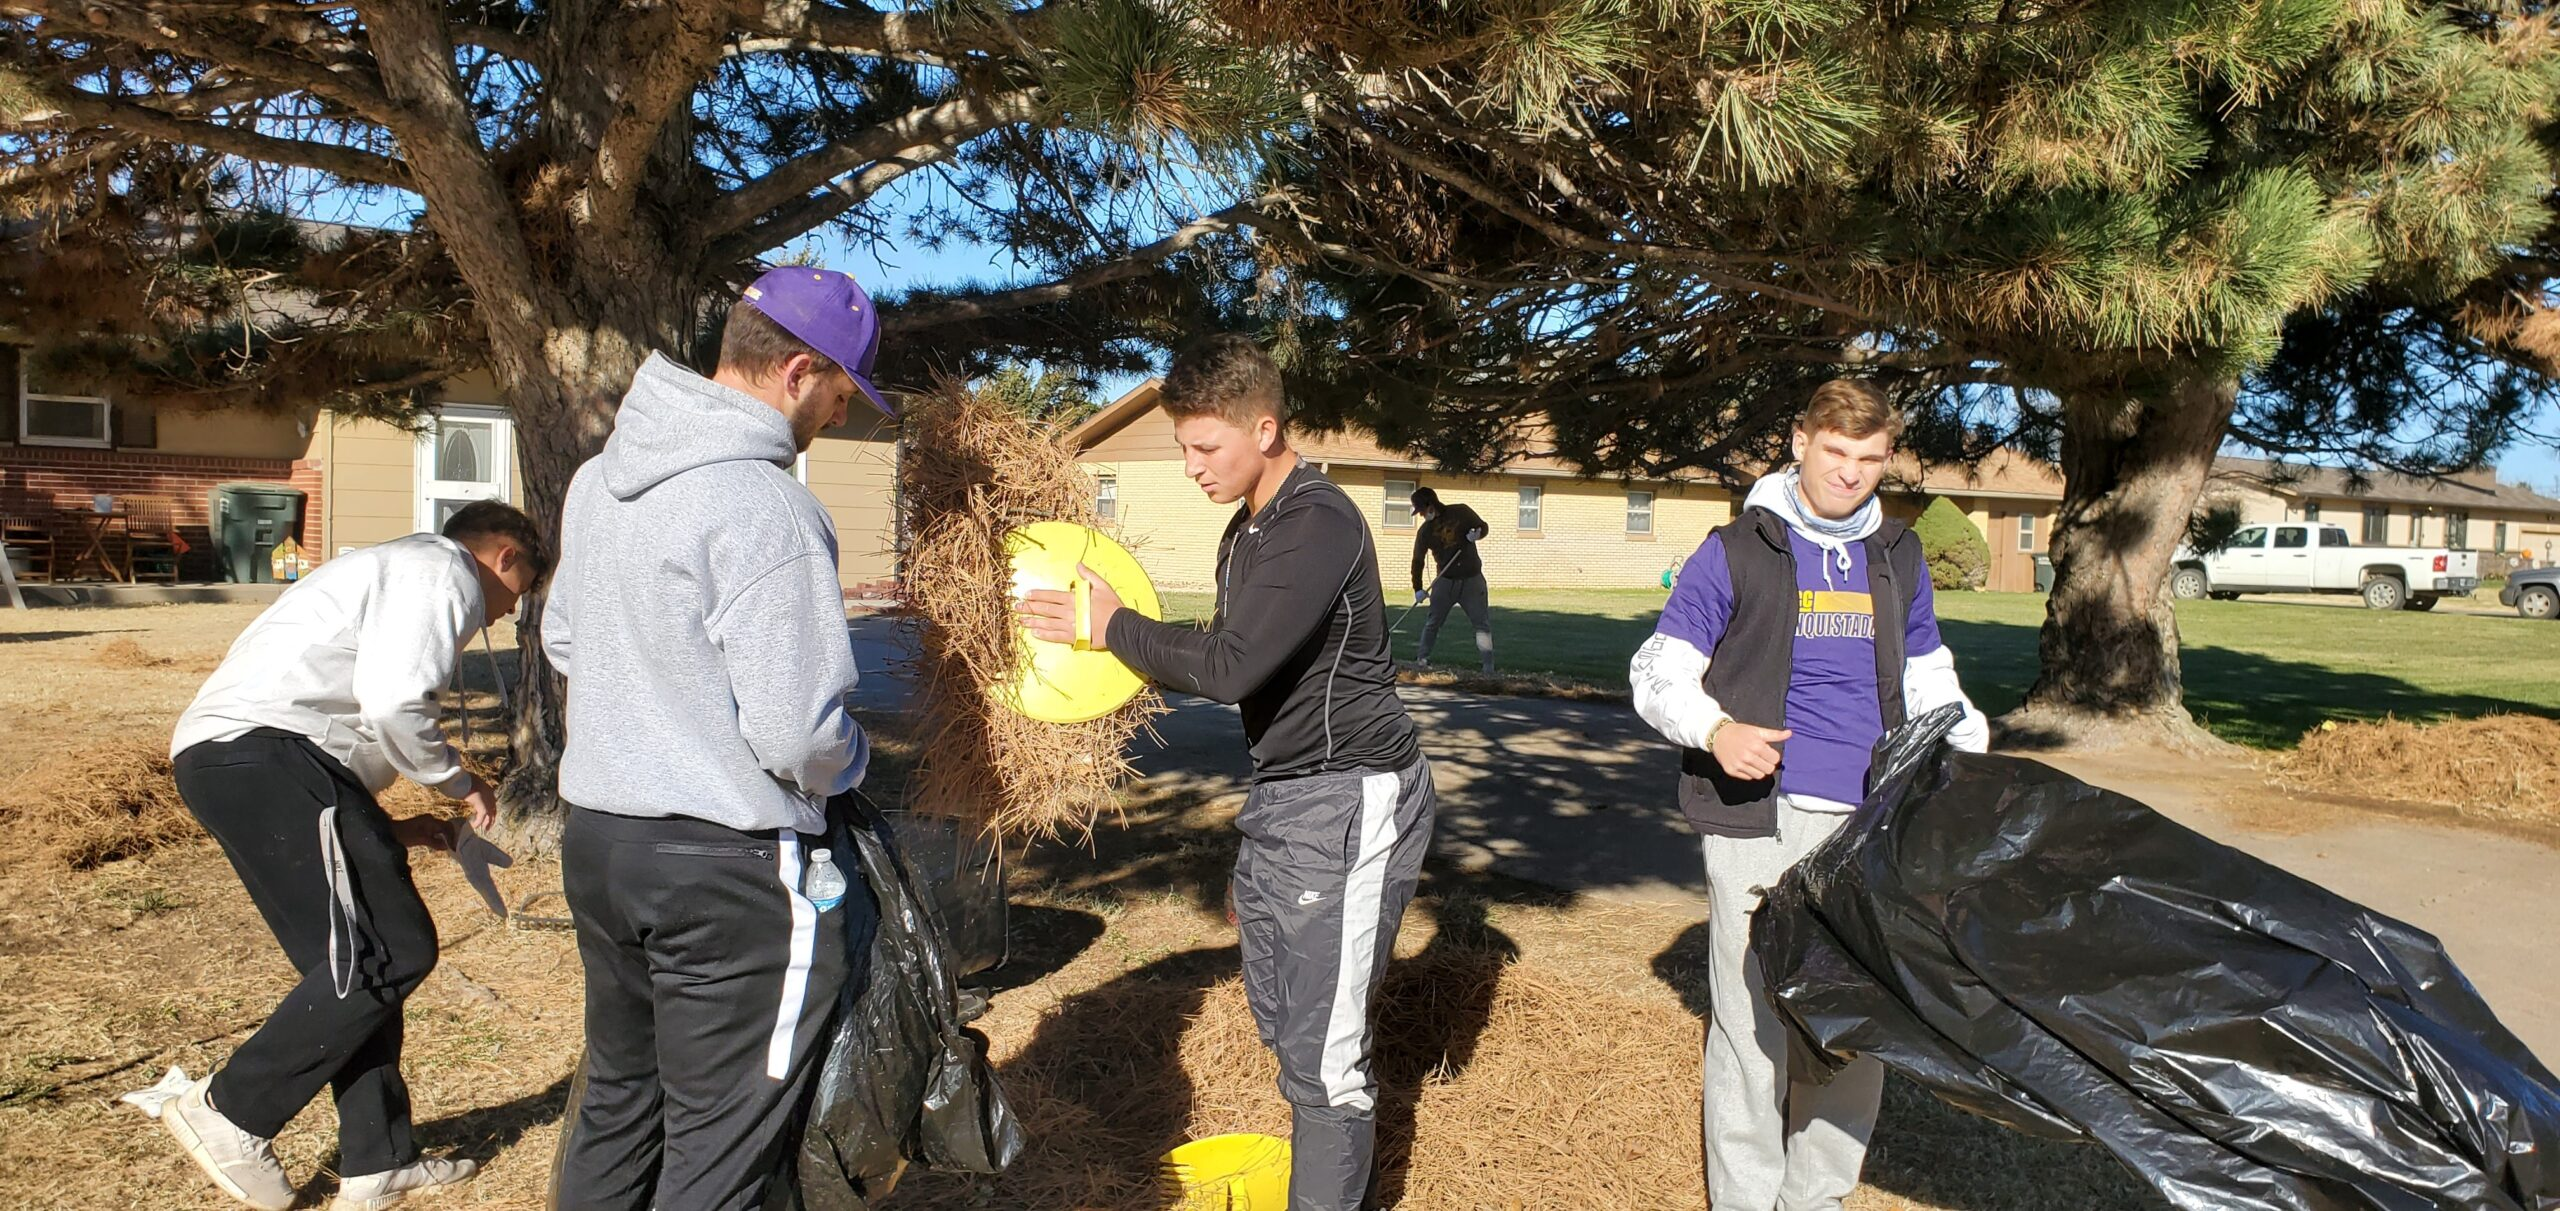 DC3 Baseball team bagging yard waste during the RSVP Annual Clean-Up Day